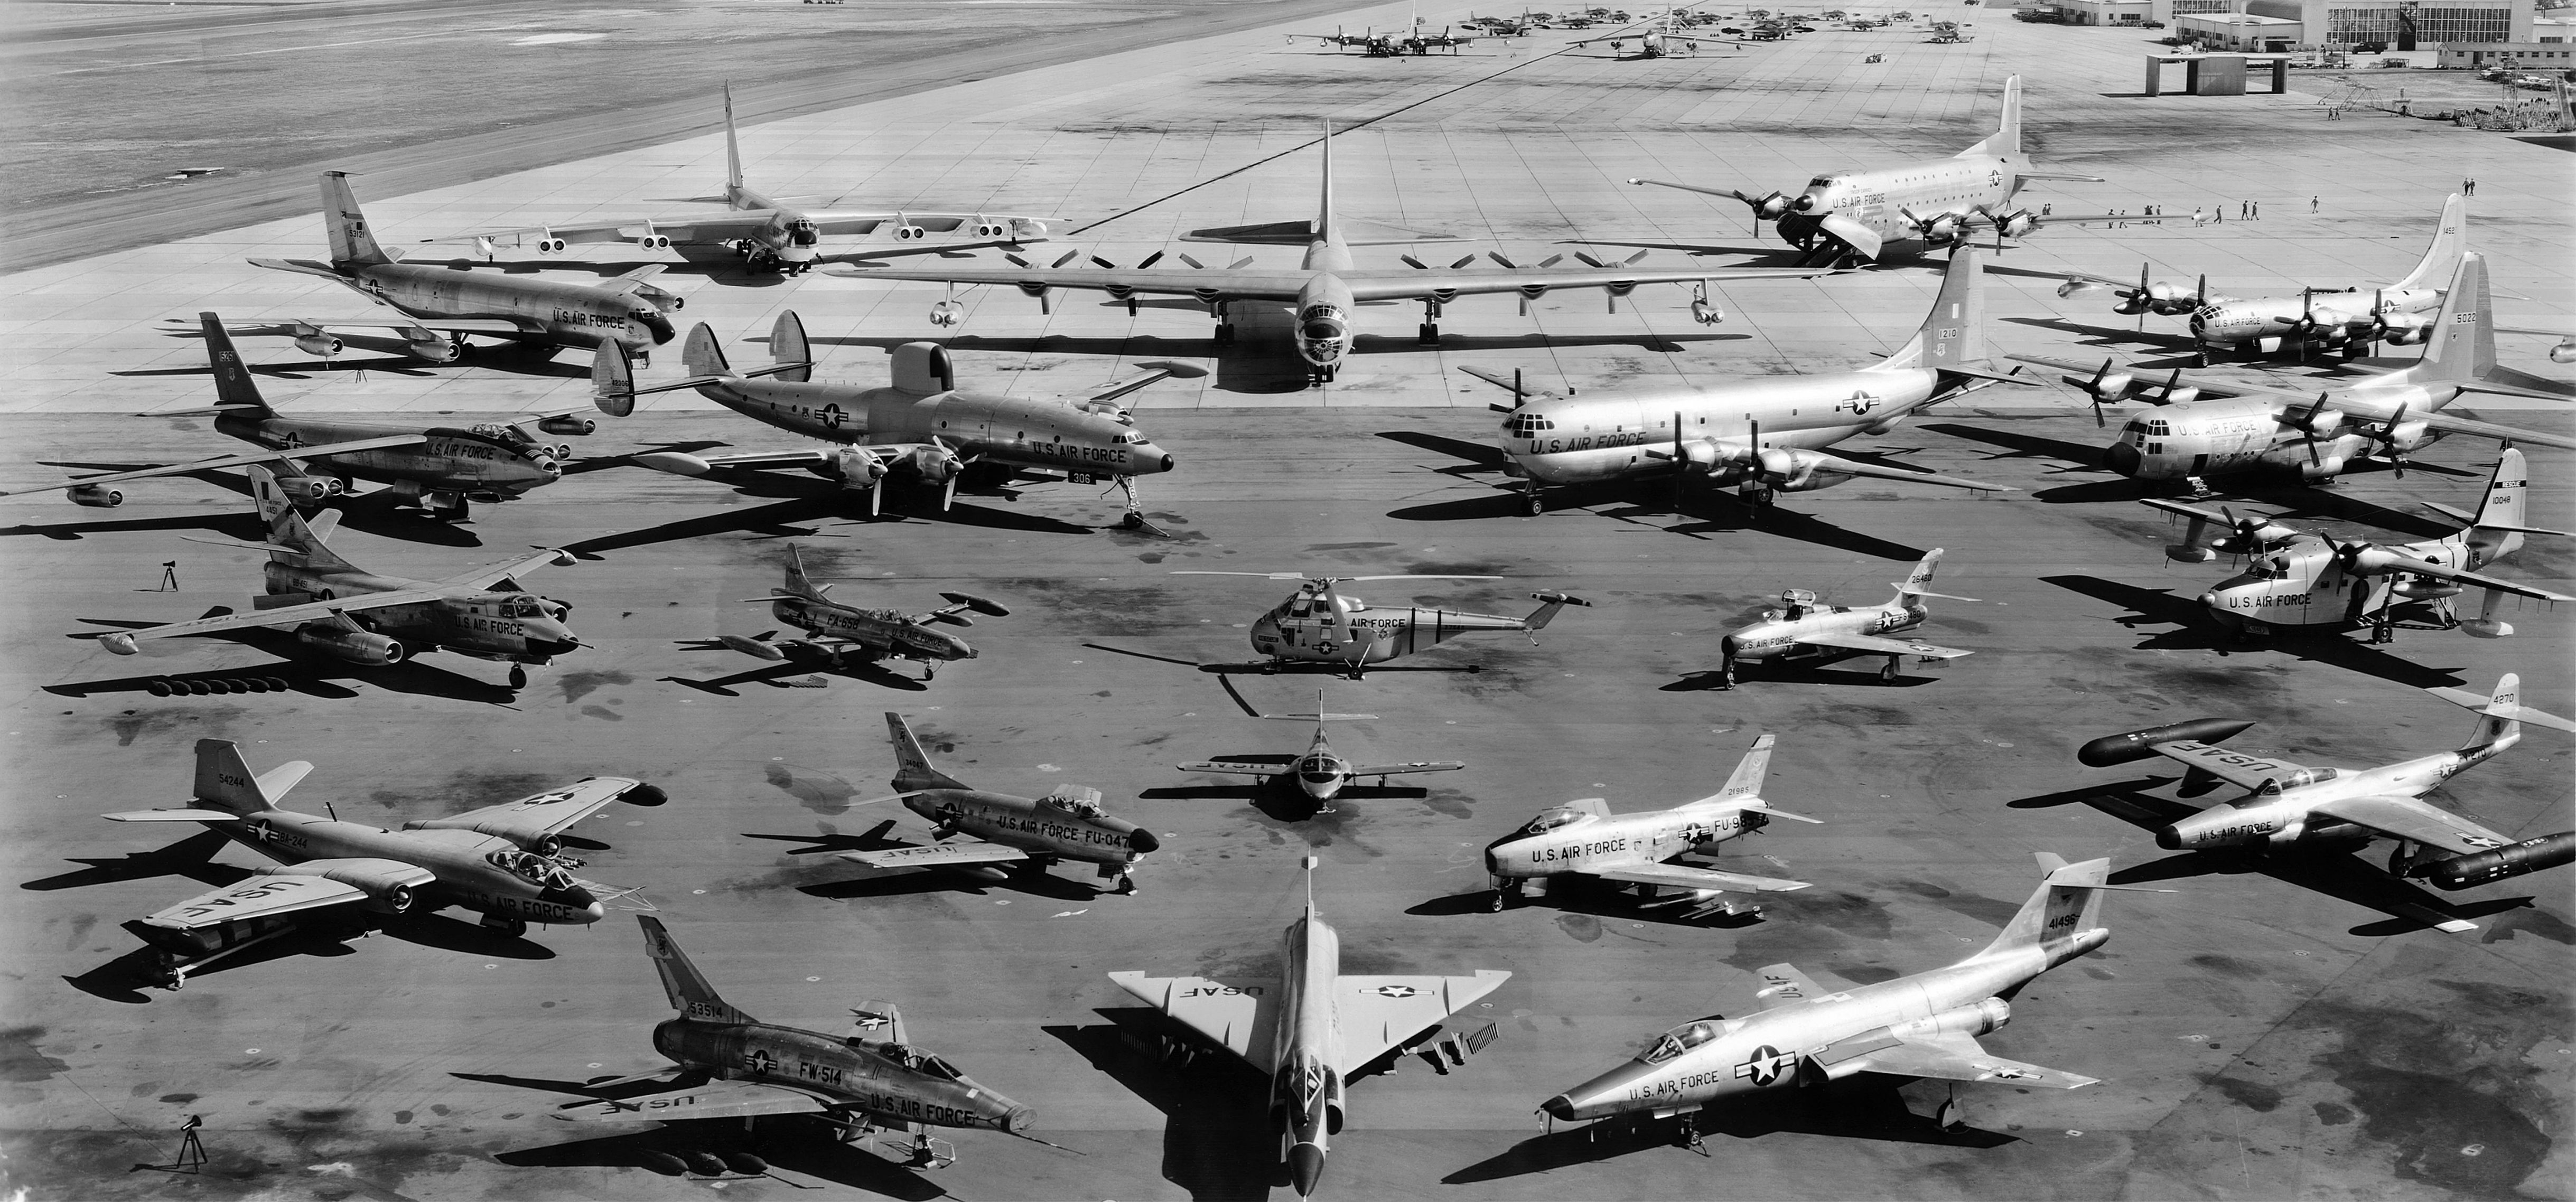 Usaf In The 1950s 4876 2276 Aviation Us Military Aircraft Military Aircraft